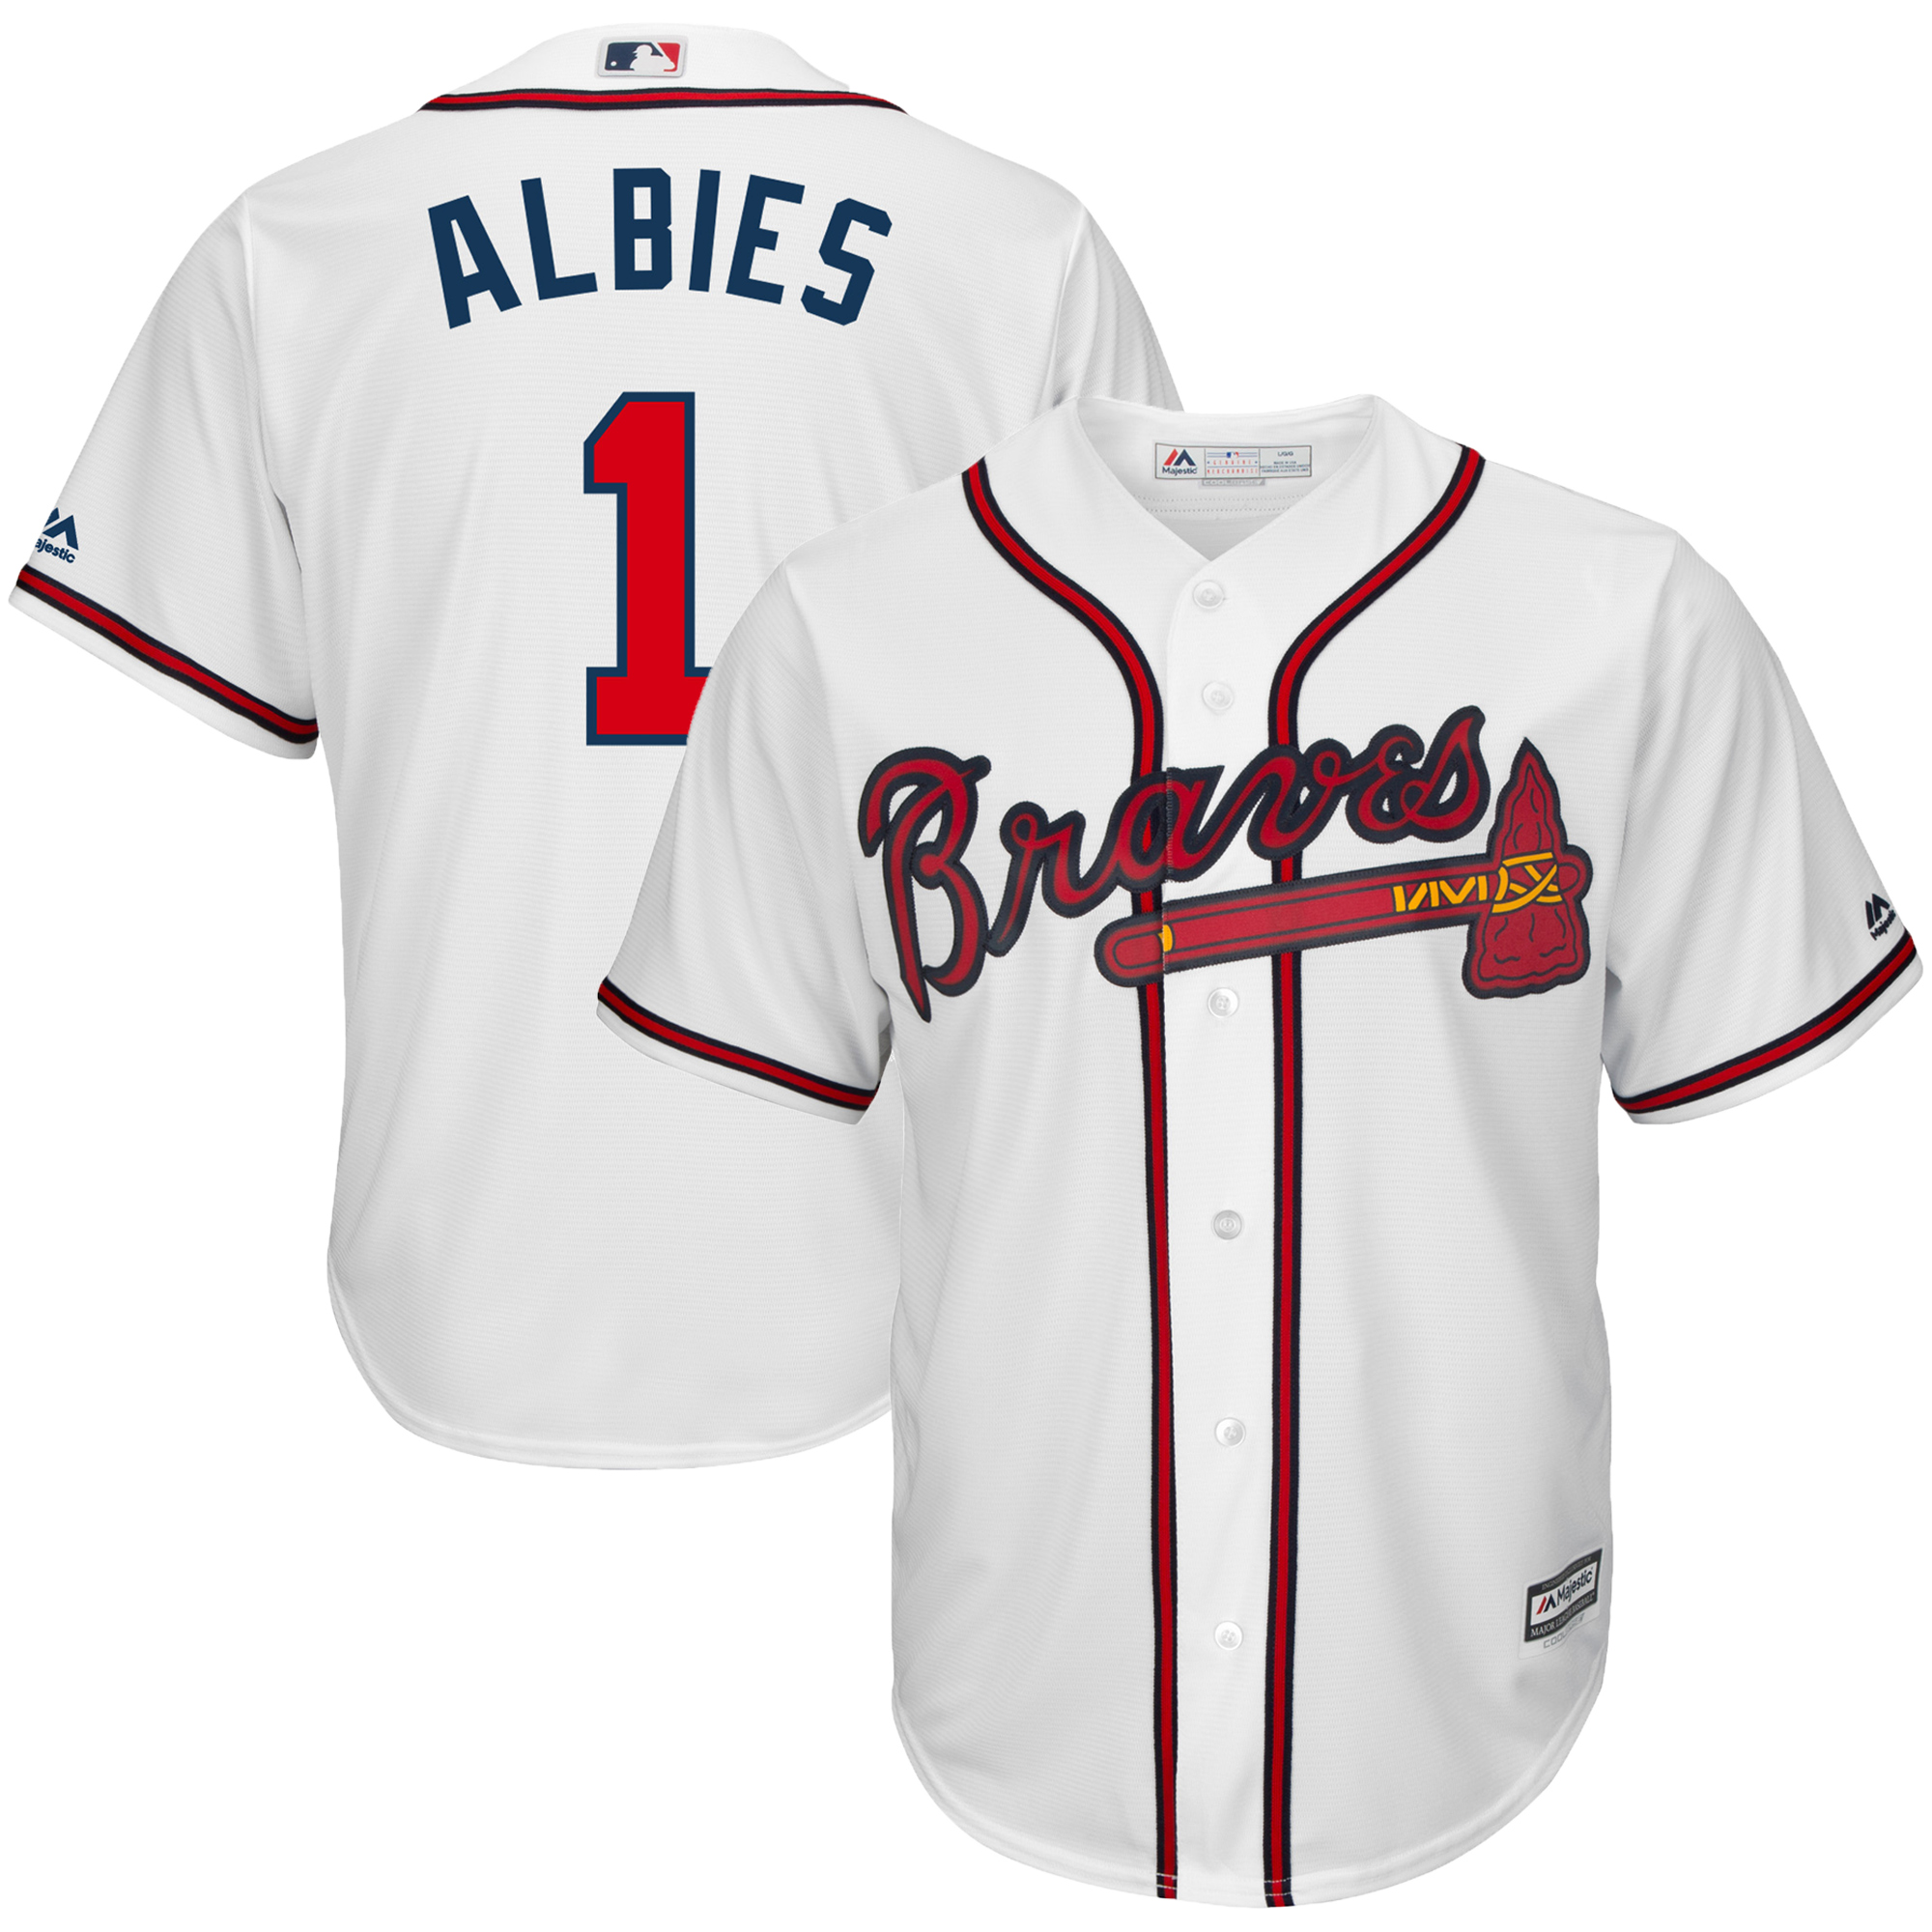 Ozzie Albies Atlanta Braves Majestic Home Cool Base Player Jersey - White